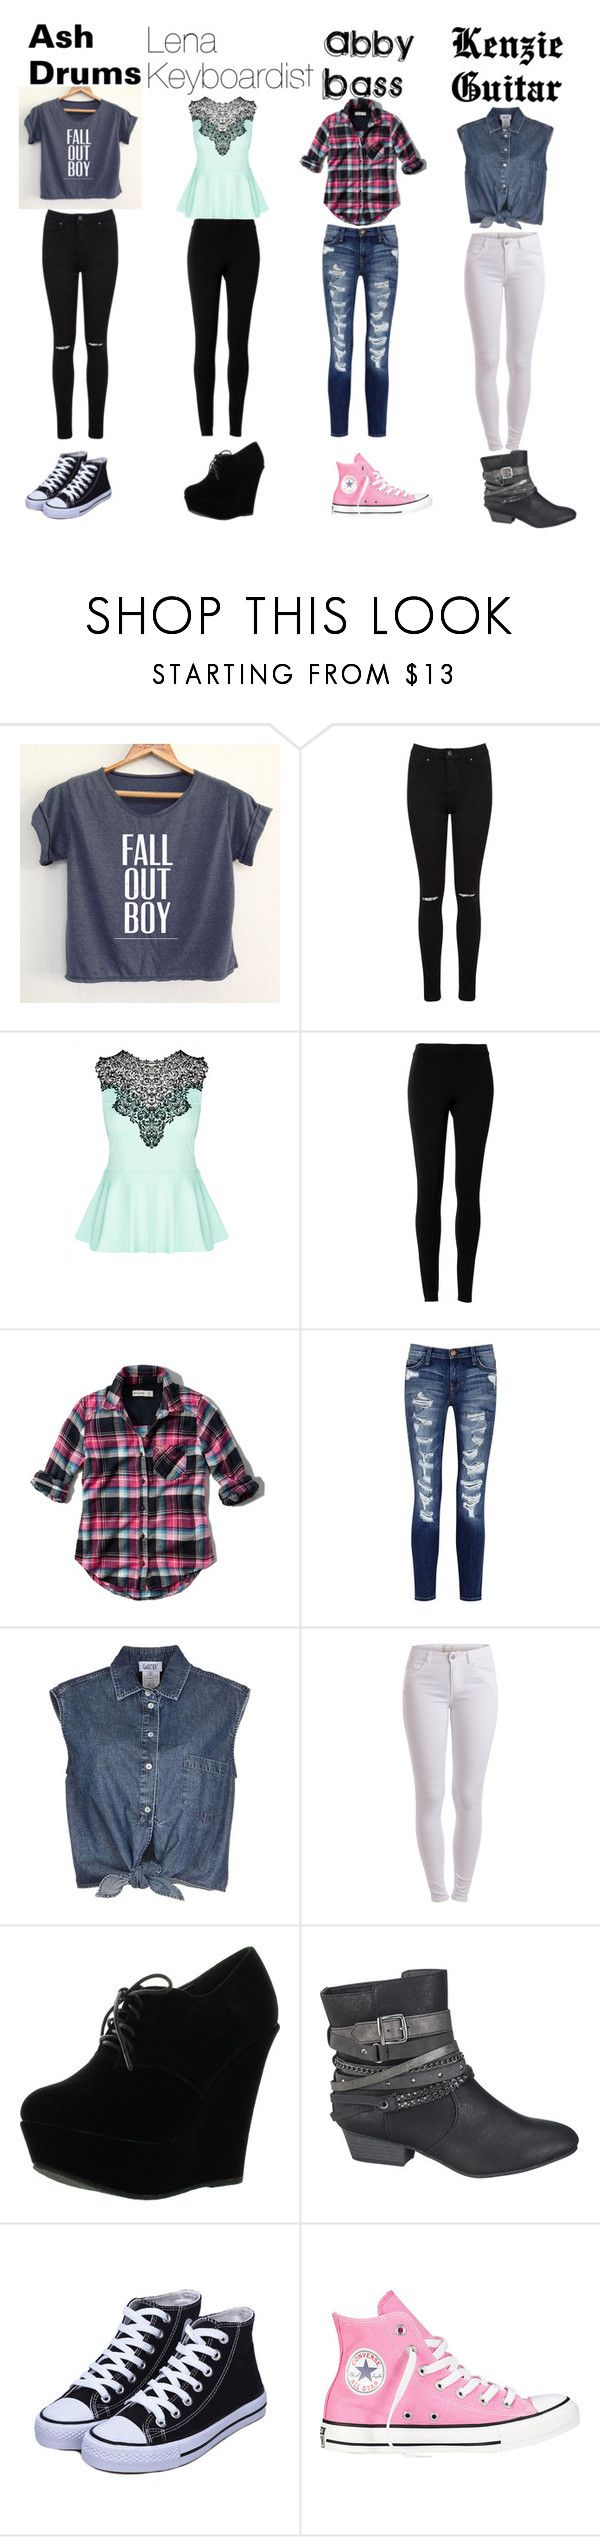 Elementary school kids writing letters to veterans lulz ensued -  Battle Of The Bands Outfits By Mdeek Liked On Polyvore Featuring Miss Selfridge